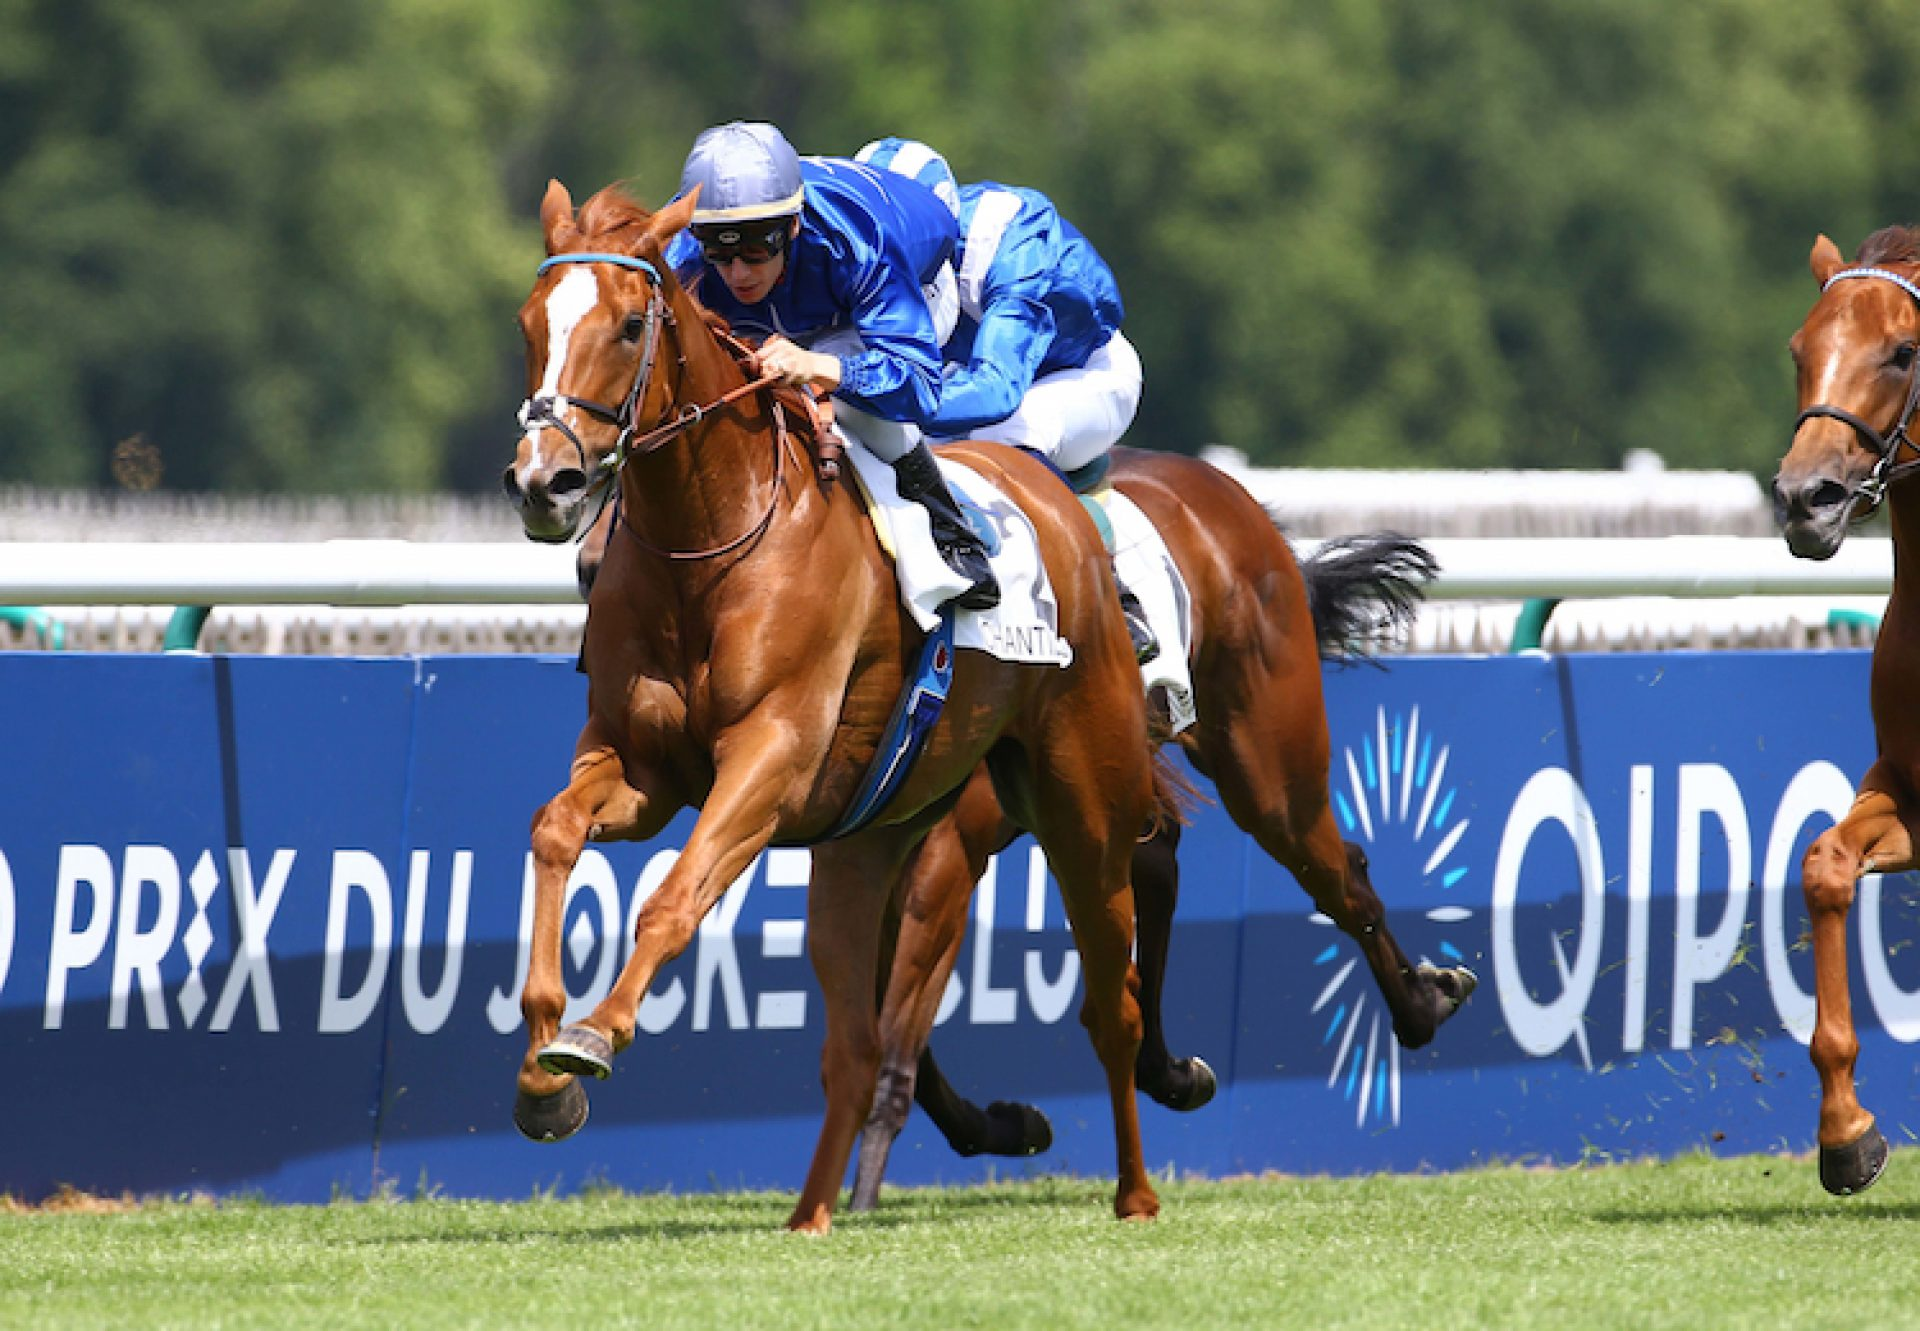 Mission Impassable (Galileo) winning the G2 Prix de Sandringham